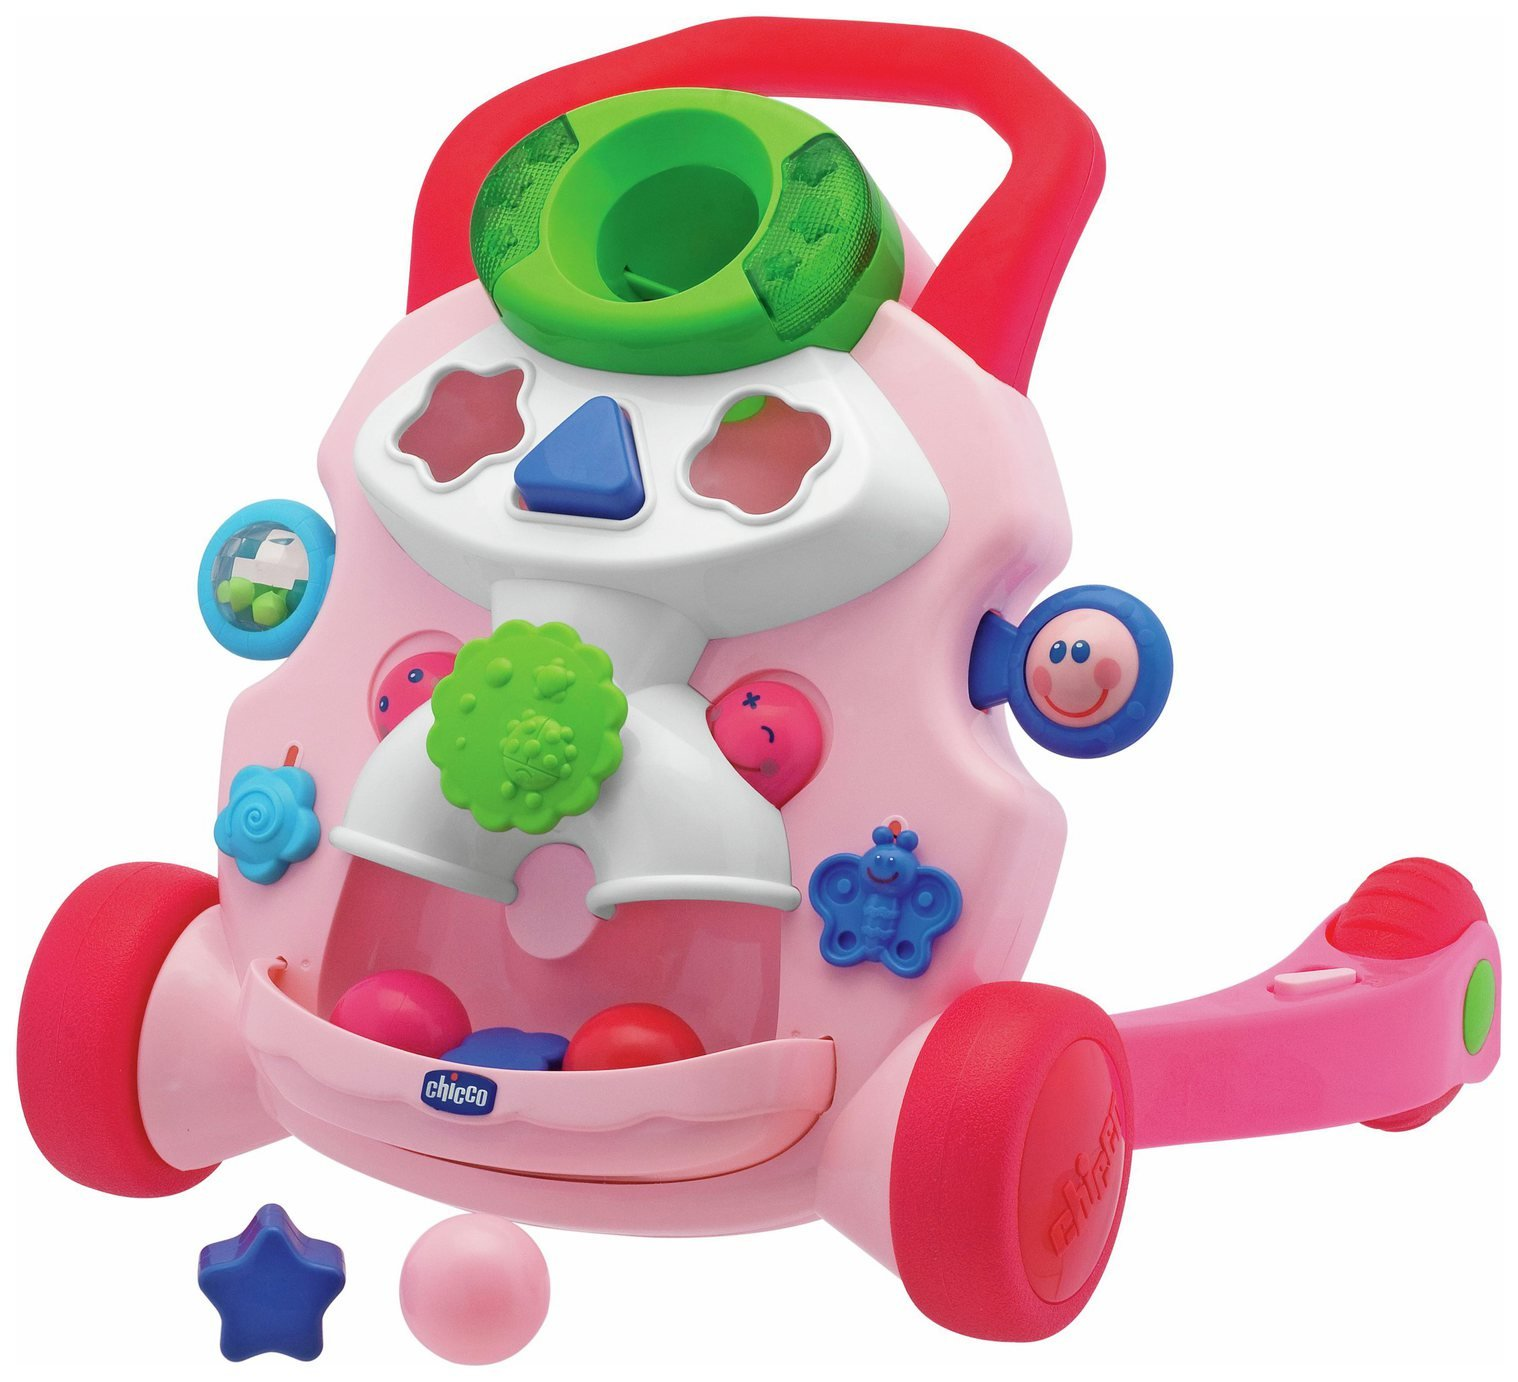 Chicco Baby Steps Activity Baby Walker – Pink